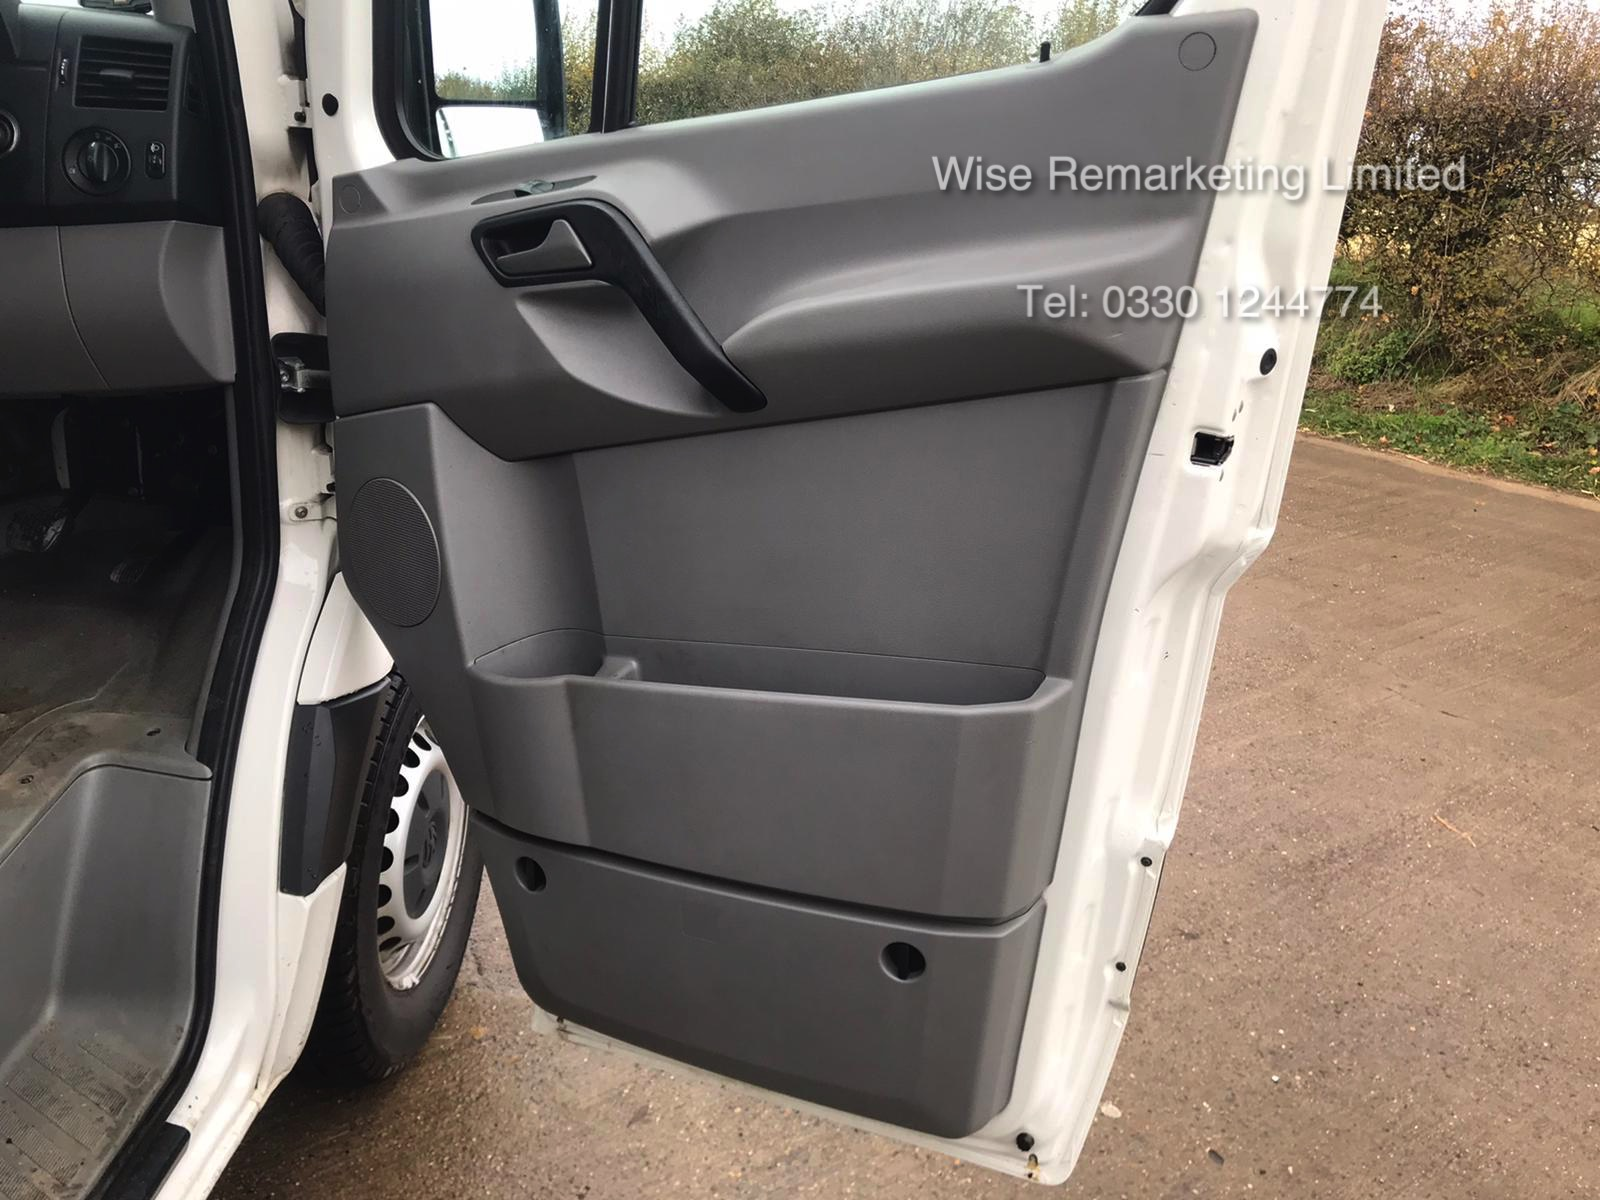 Volkswagen Crafter CR35 Startline 2.0l TDi - LWB - 2016 Model -1 Keeper From New - Service History - Image 13 of 15